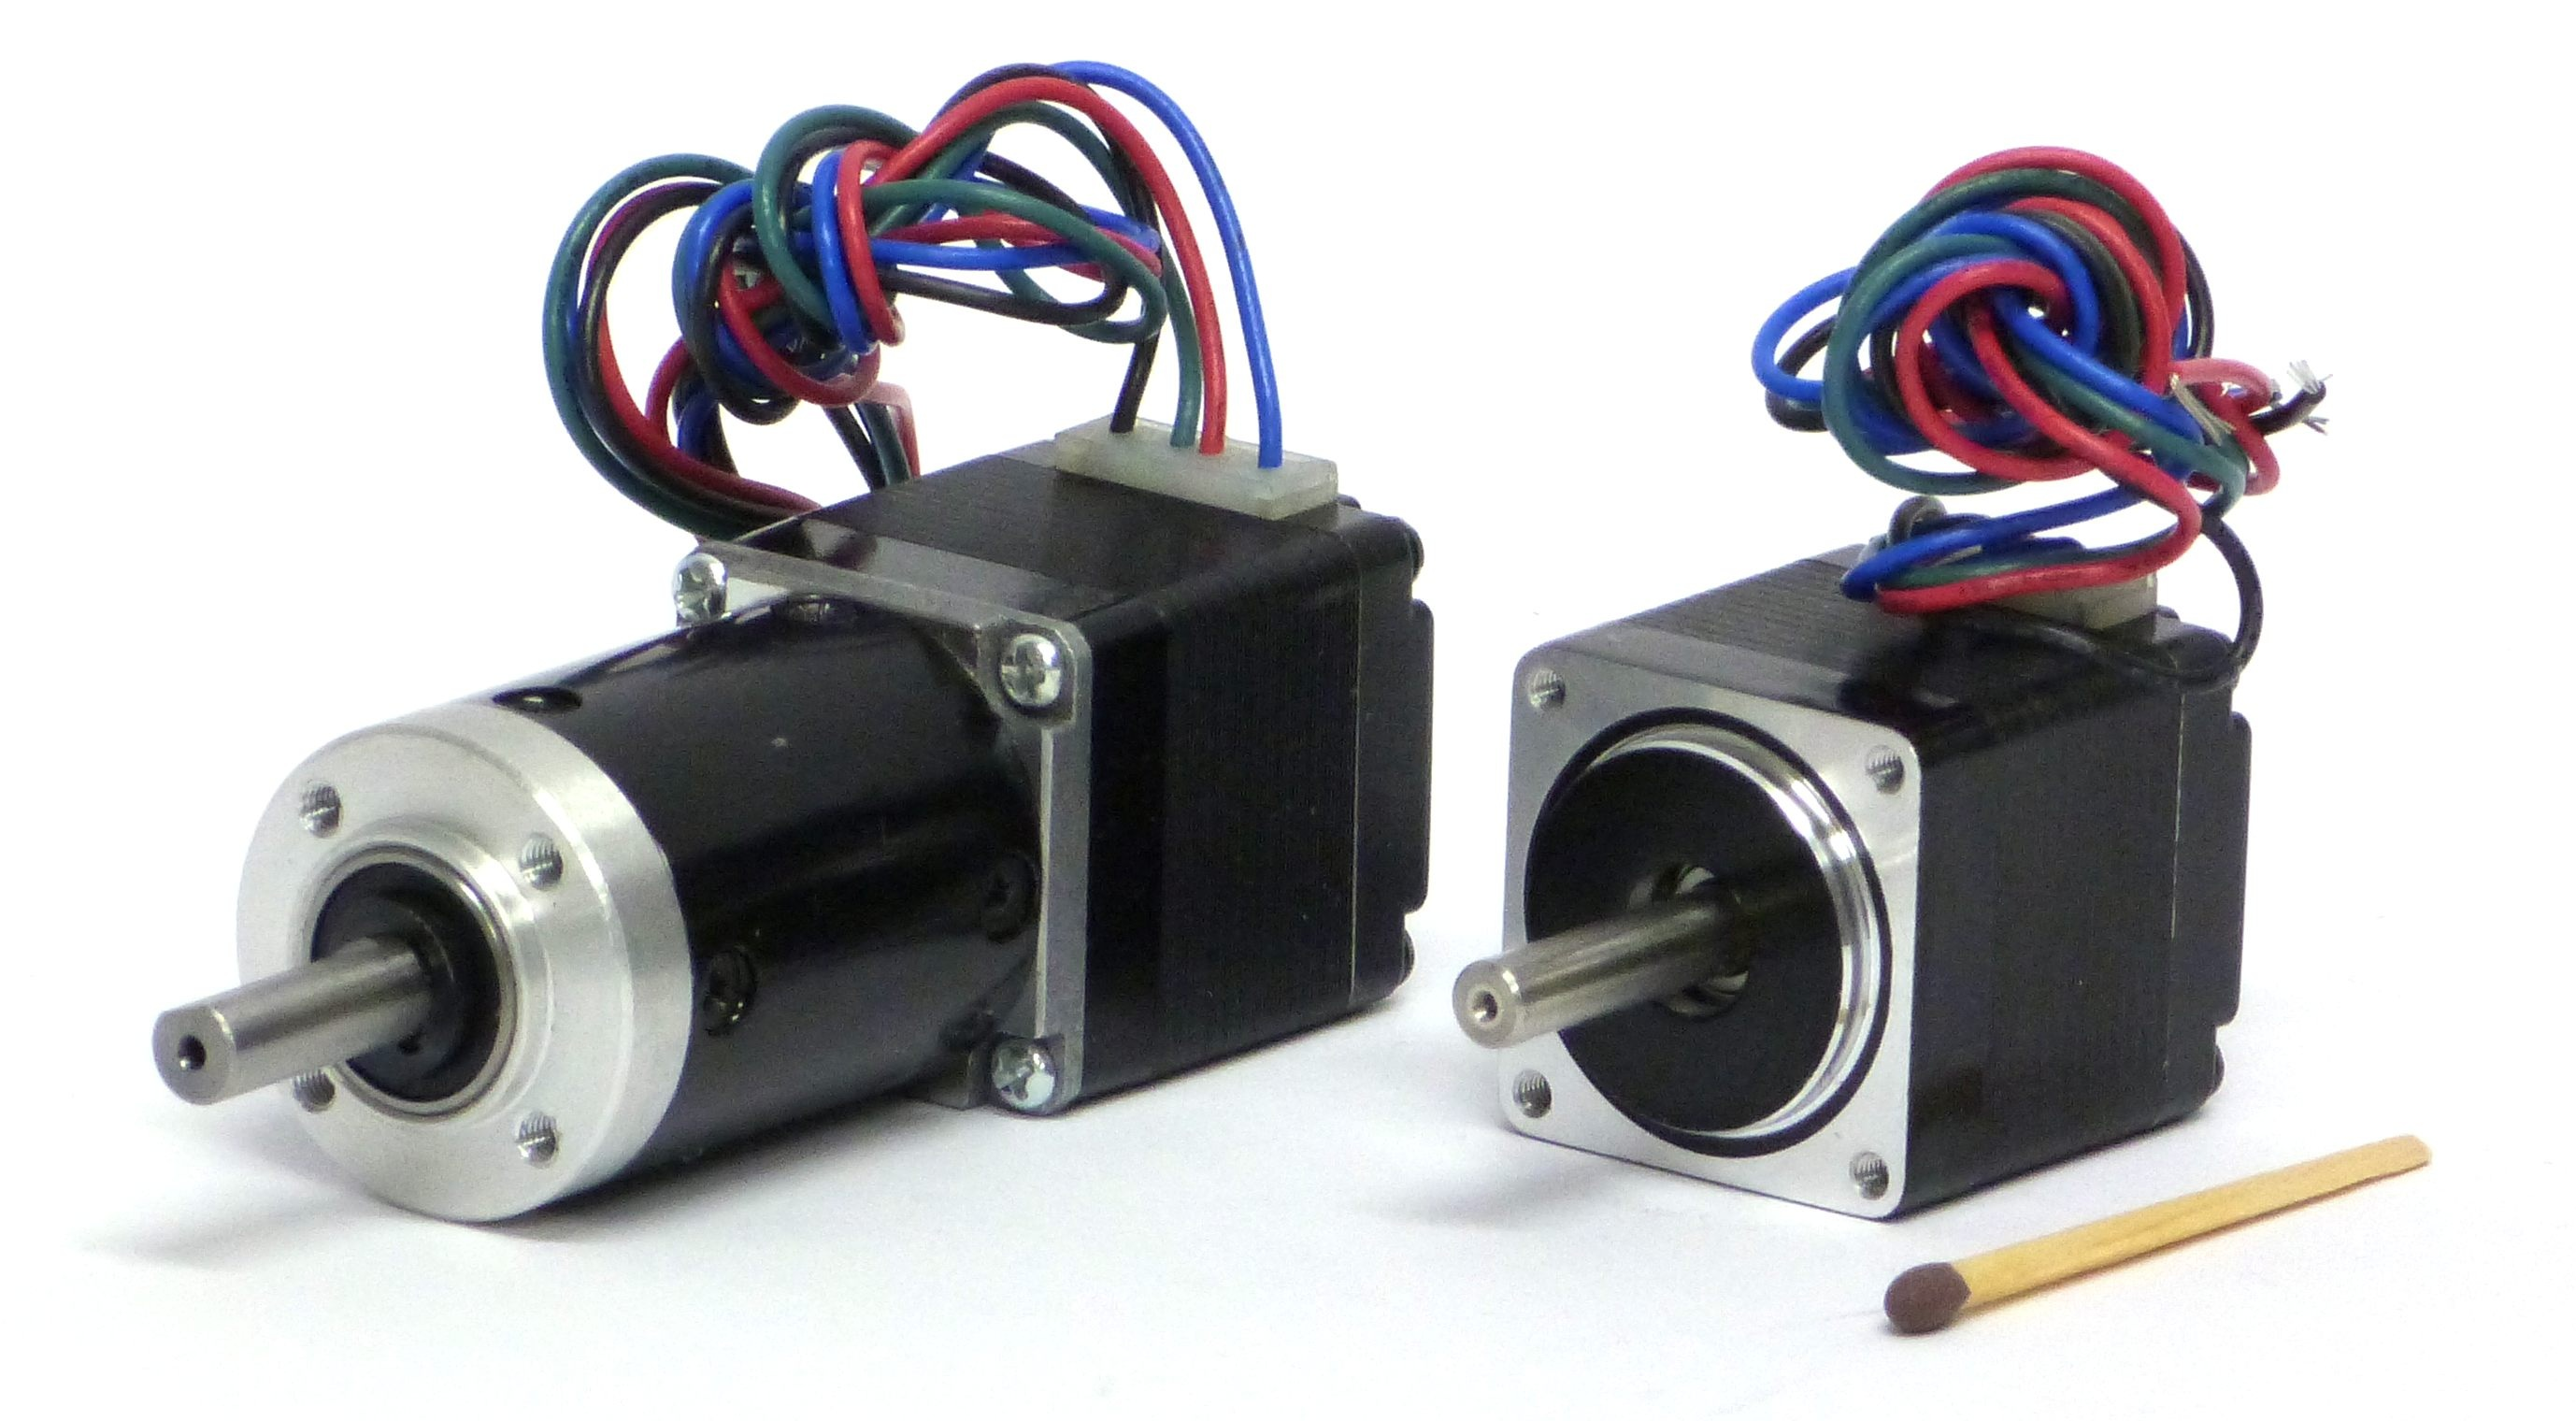 Perfect example of how small a mini stepper motor from JVL is! a real miniature stepper motor.